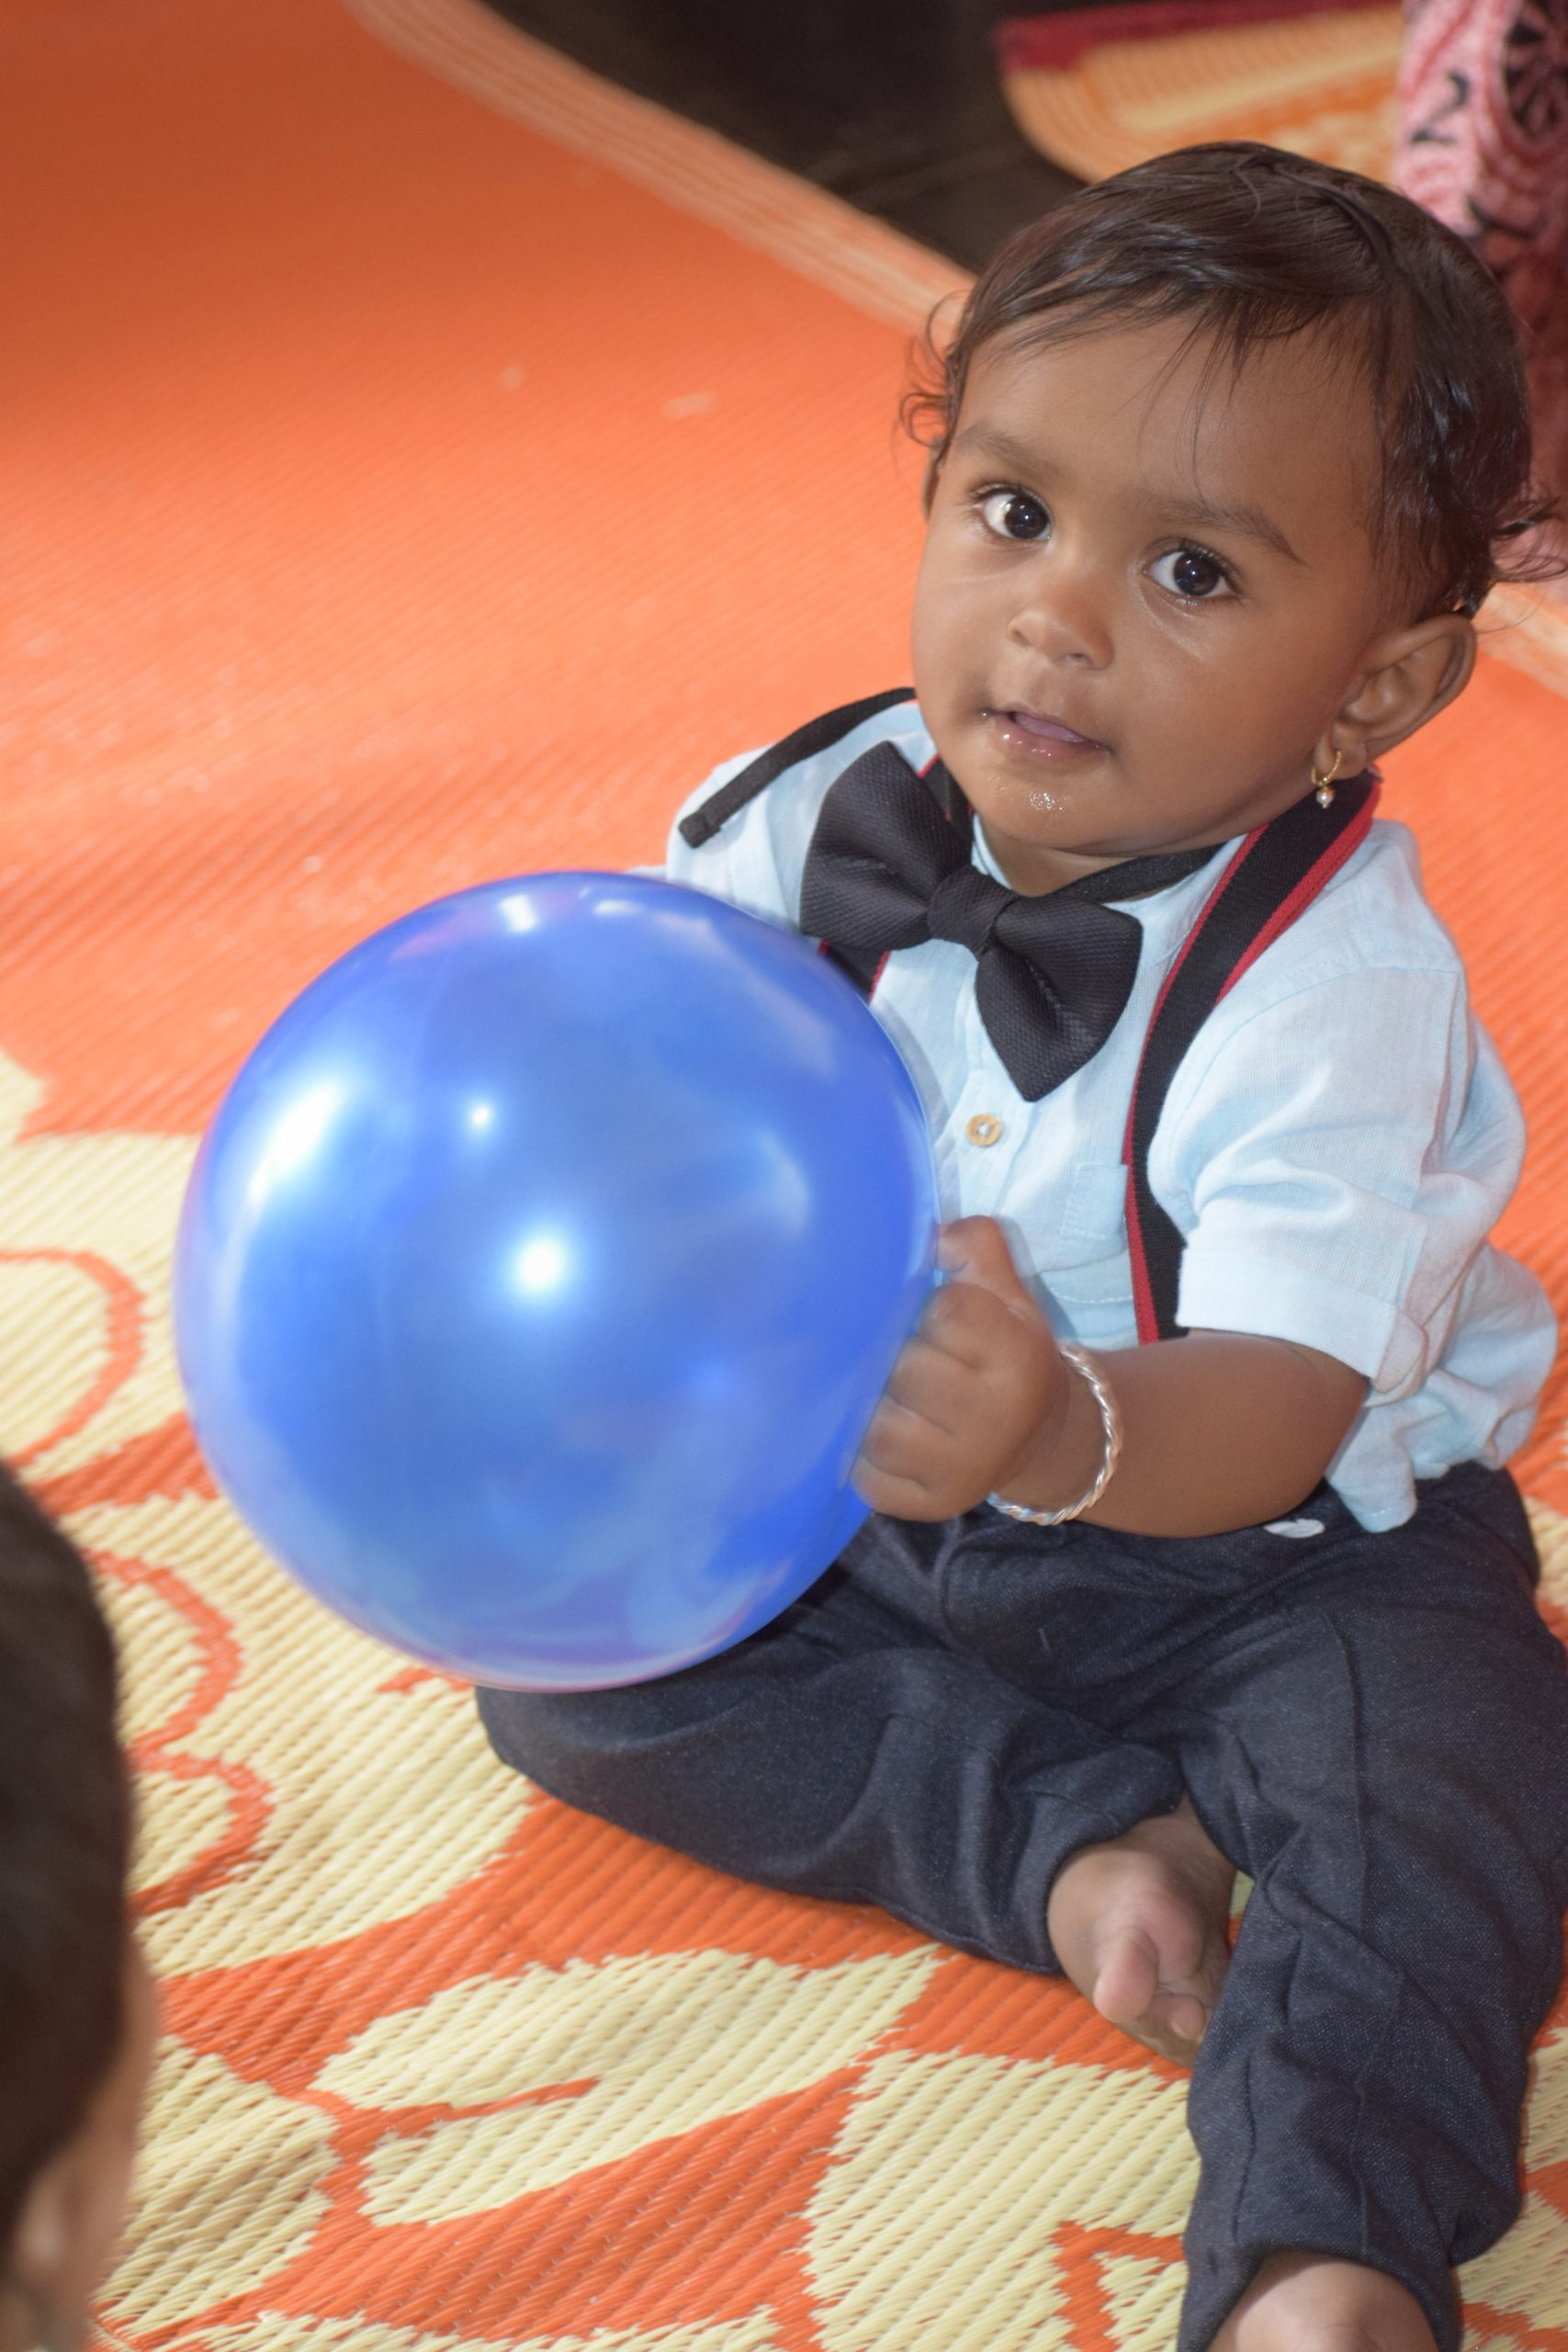 A child holding a balloon